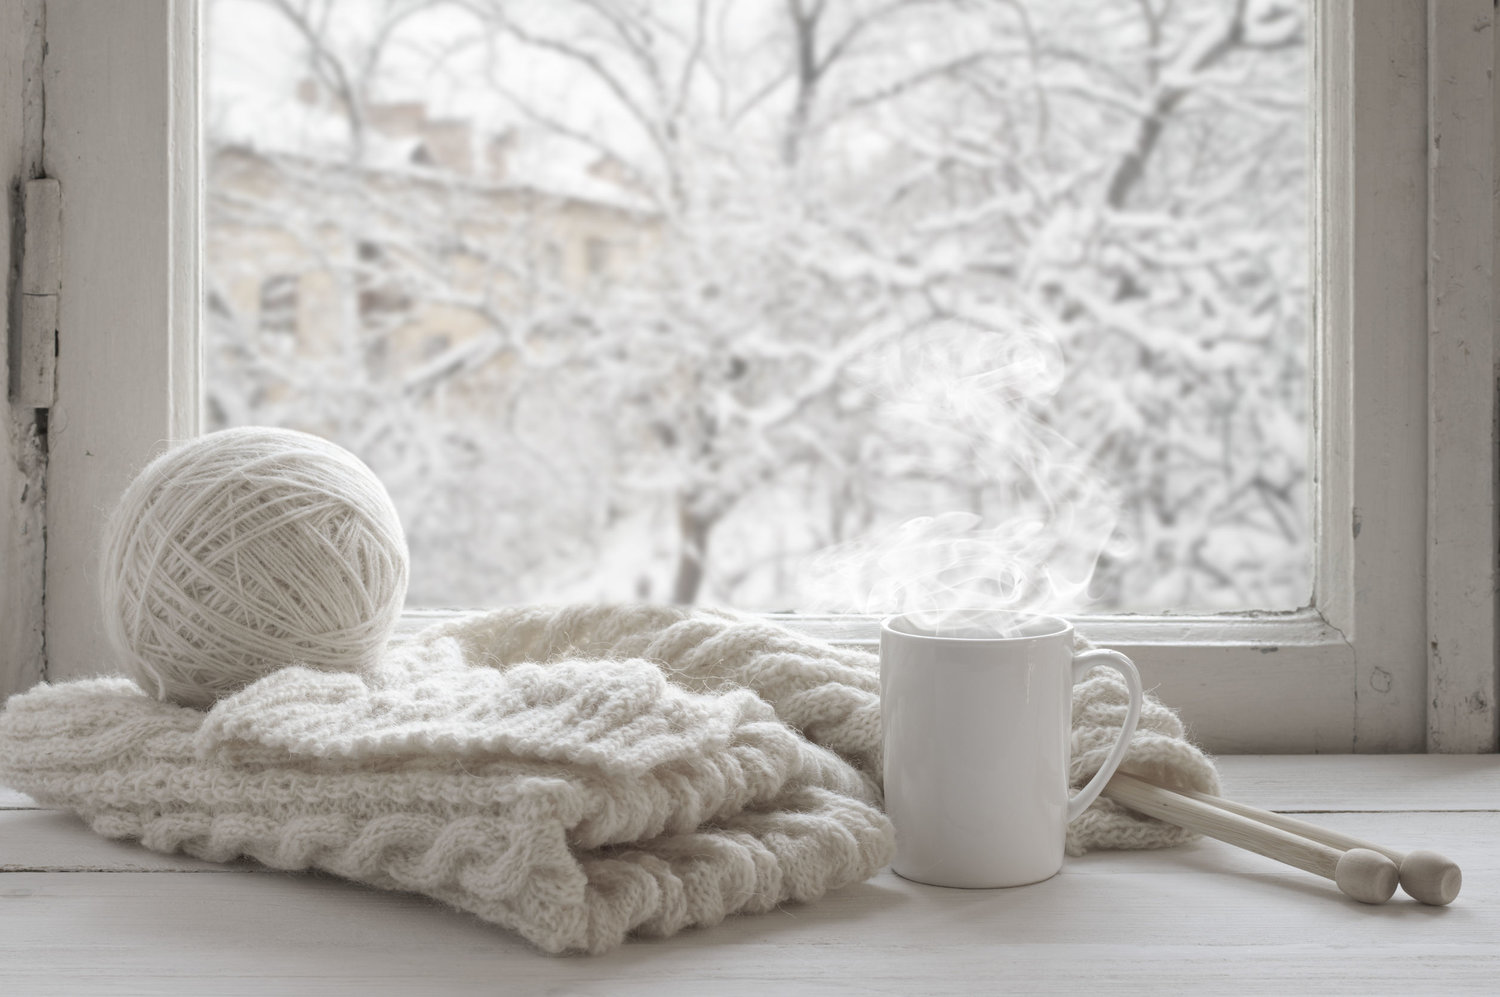 47967113 - cozy winter still life: mug of hot tea and warm woolen knitting on vintage windowsill against snow landscape from outside.